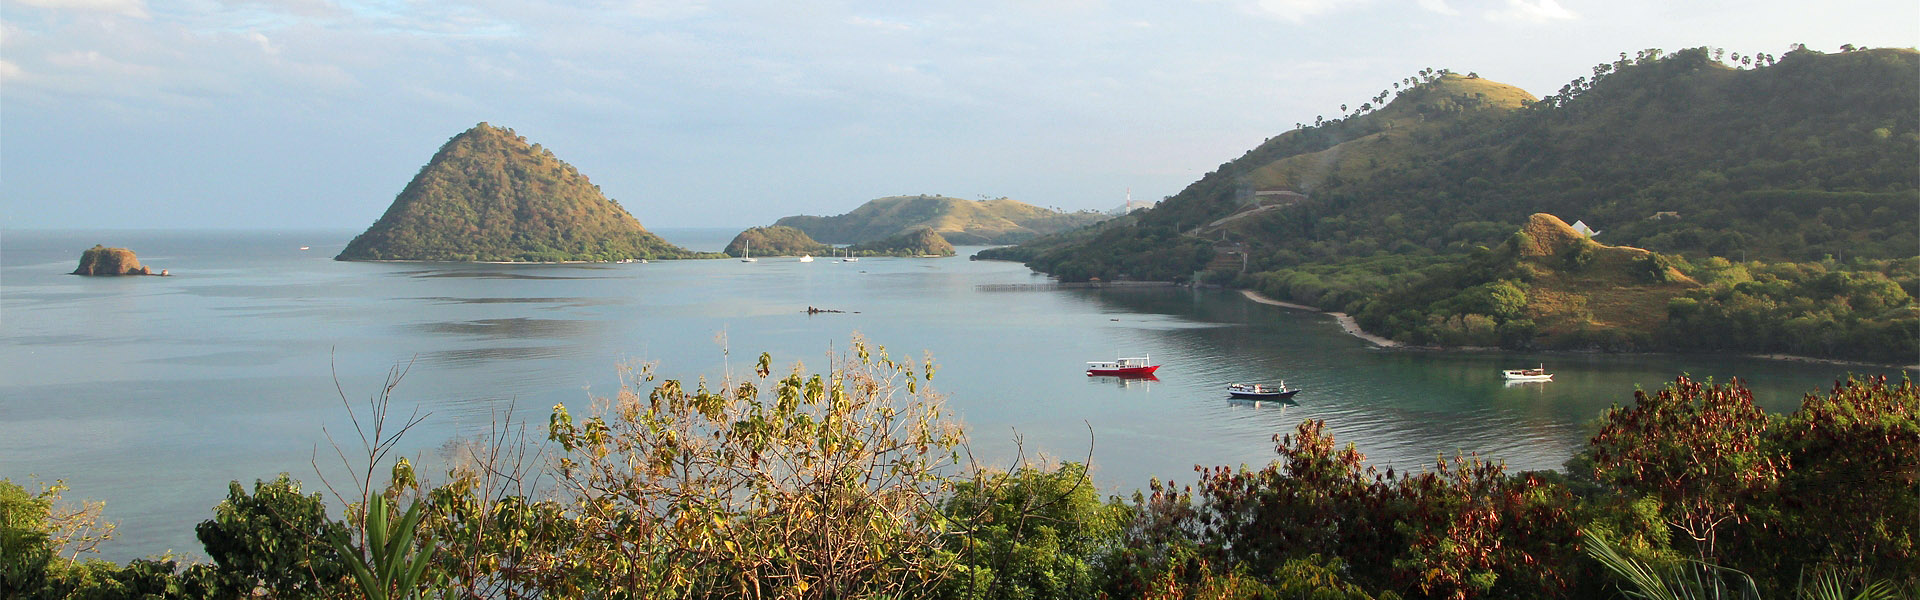 View across north Labuan Bajo bay, Flores, Indonesia